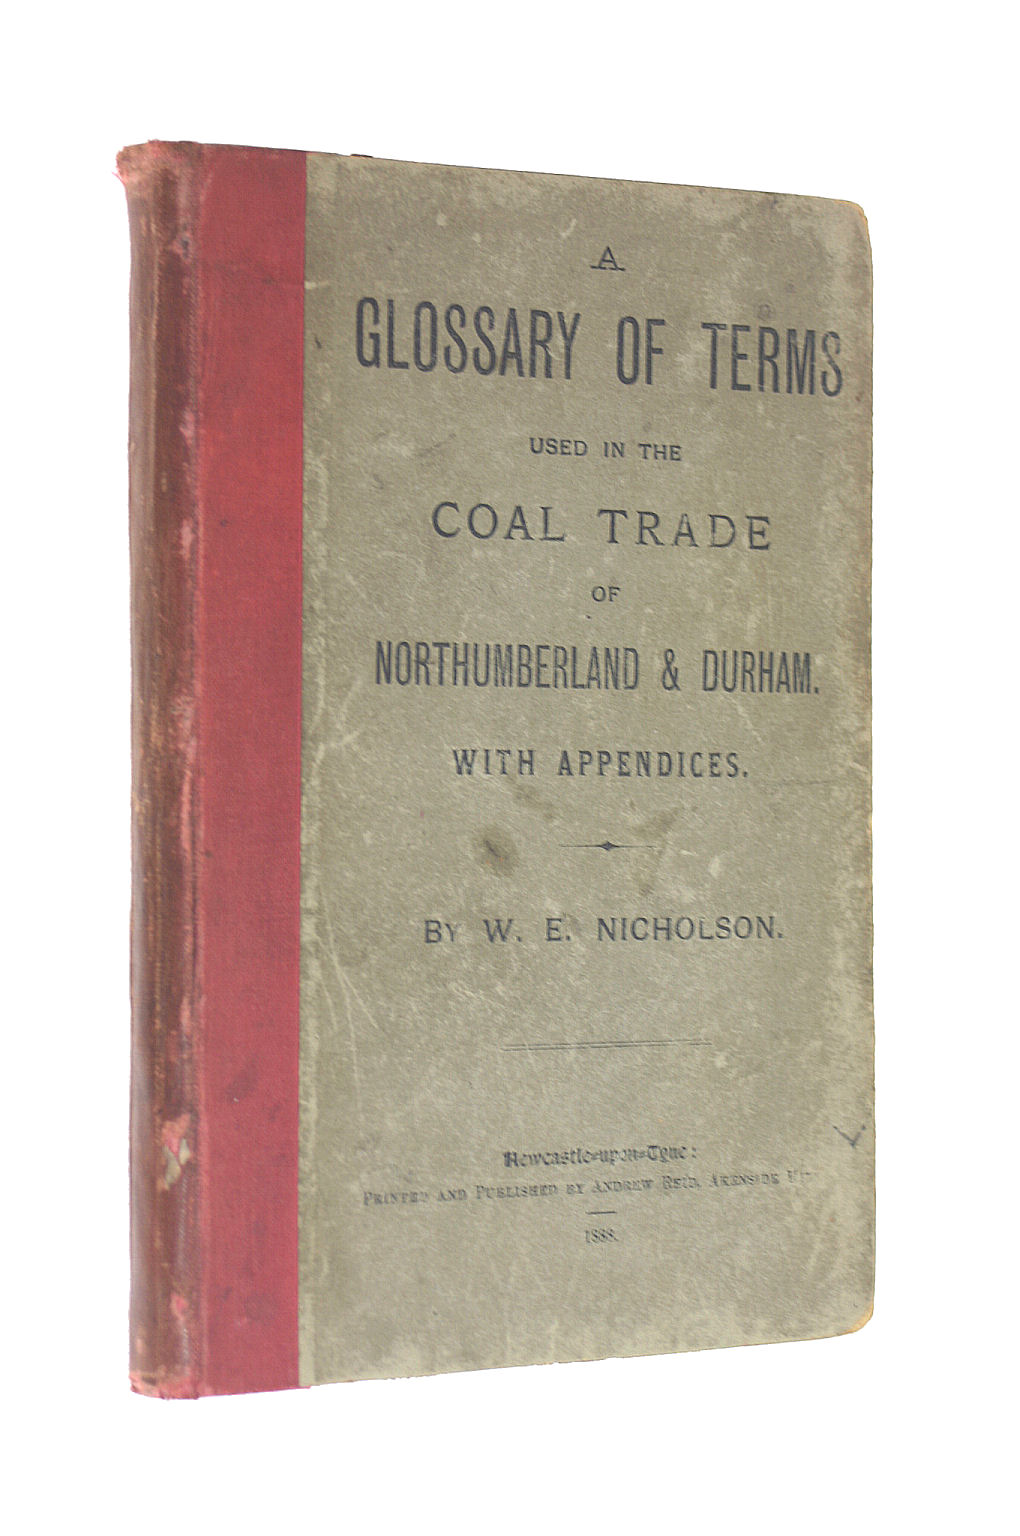 Image for A Glossary of Terms Used in the Coal Trade of Northumberland & Durham